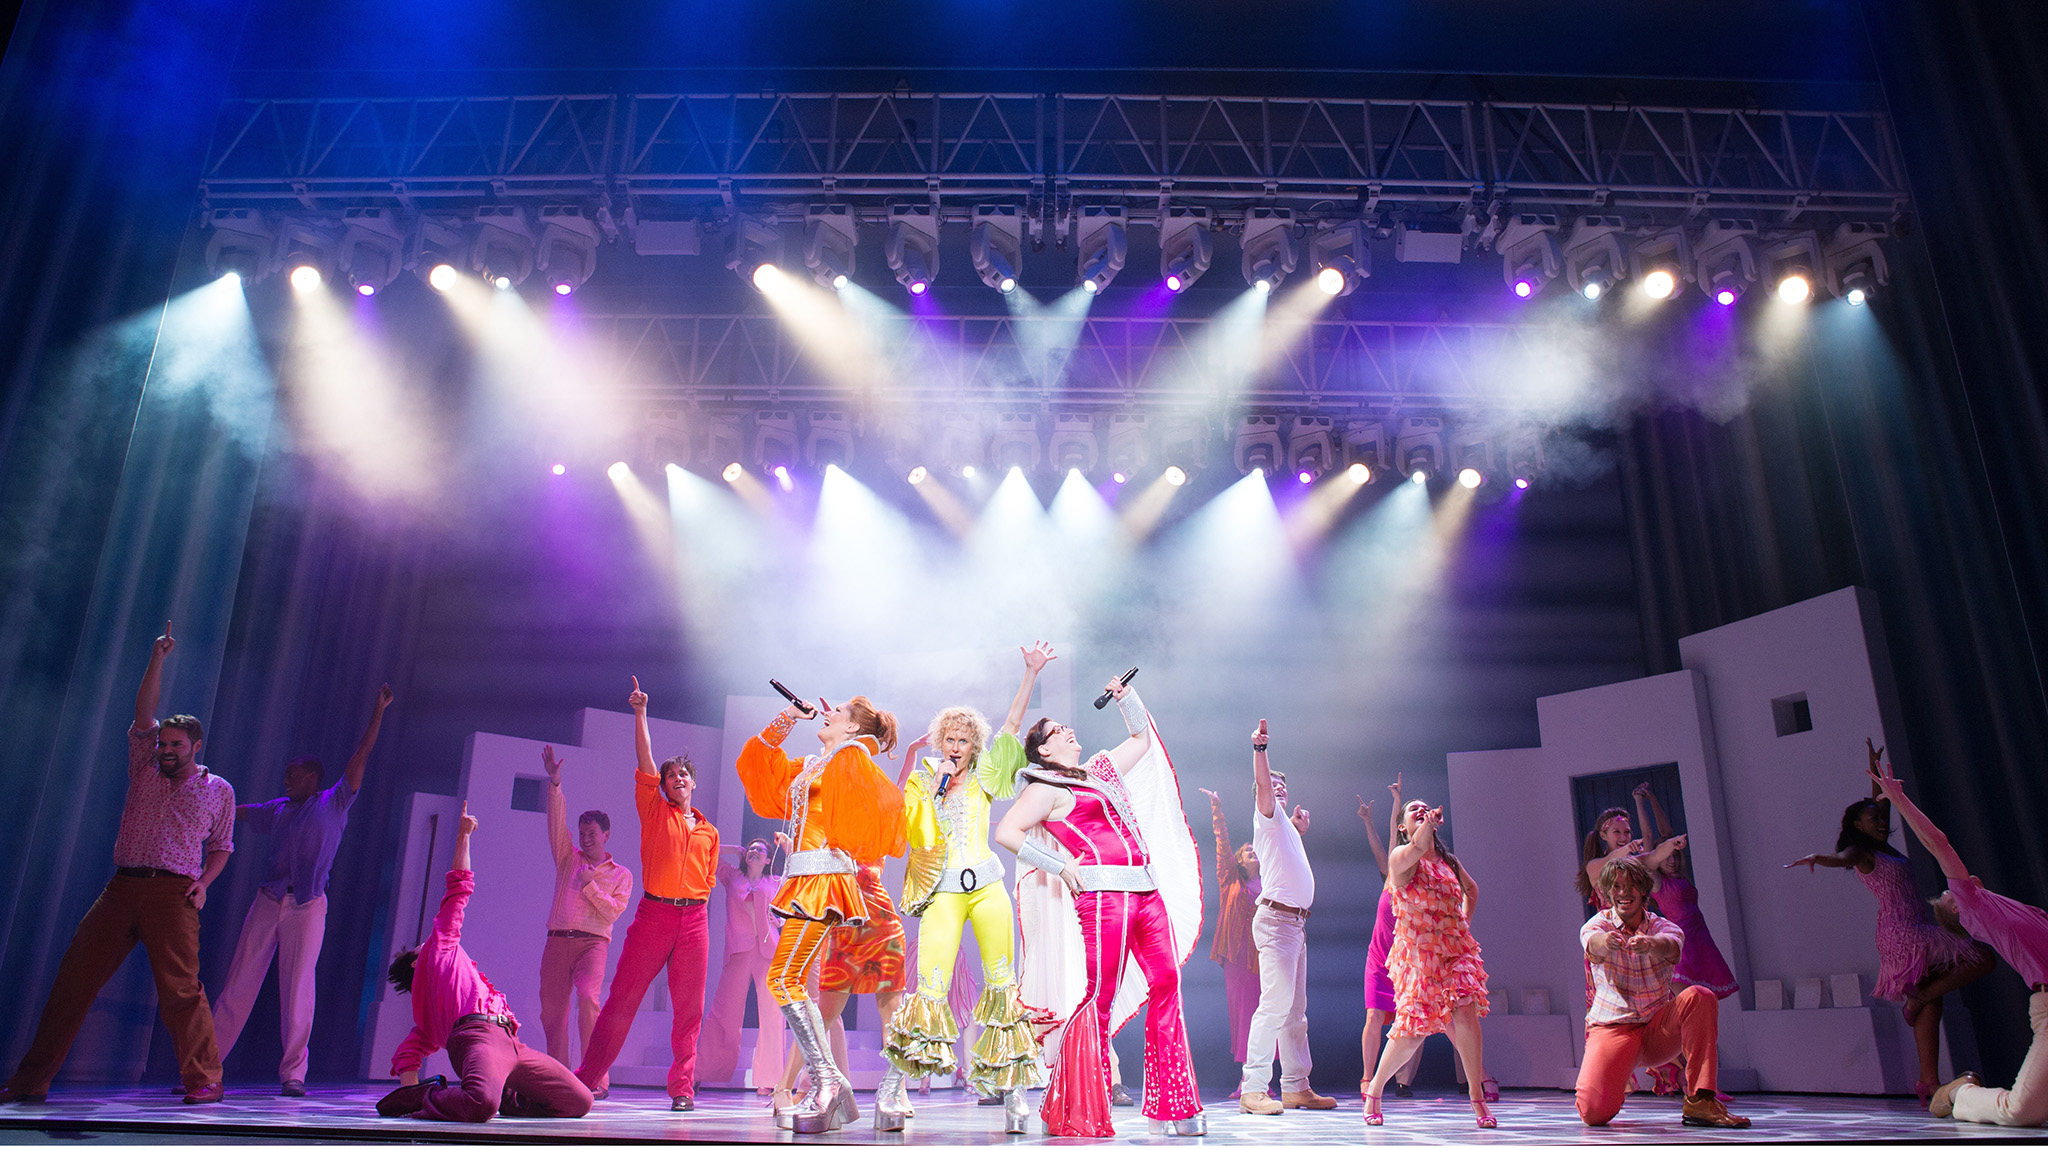 Broadway Hit Musical 'Mamma Mia!' Comes to the Ford Center